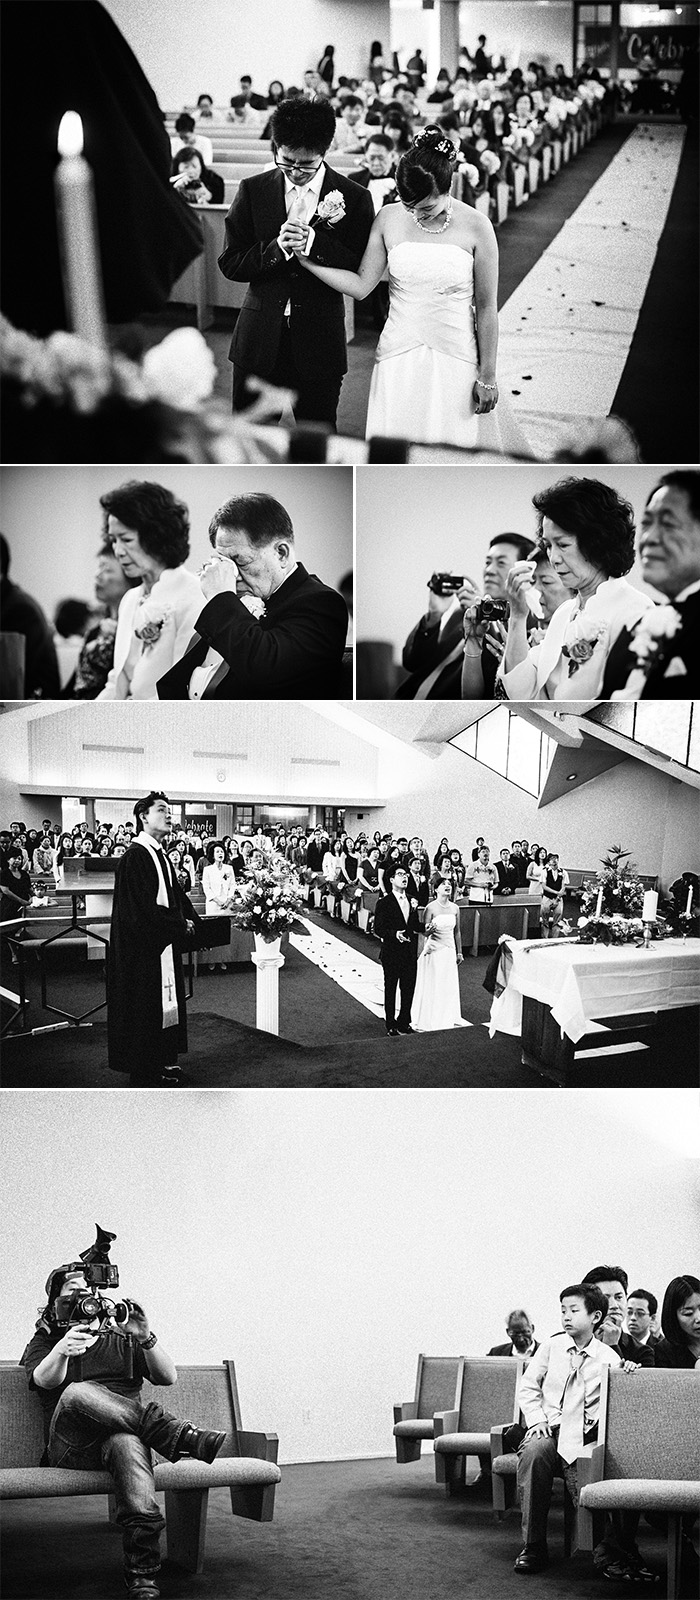 West Covina Christian Church documentary wedding photography ceremony